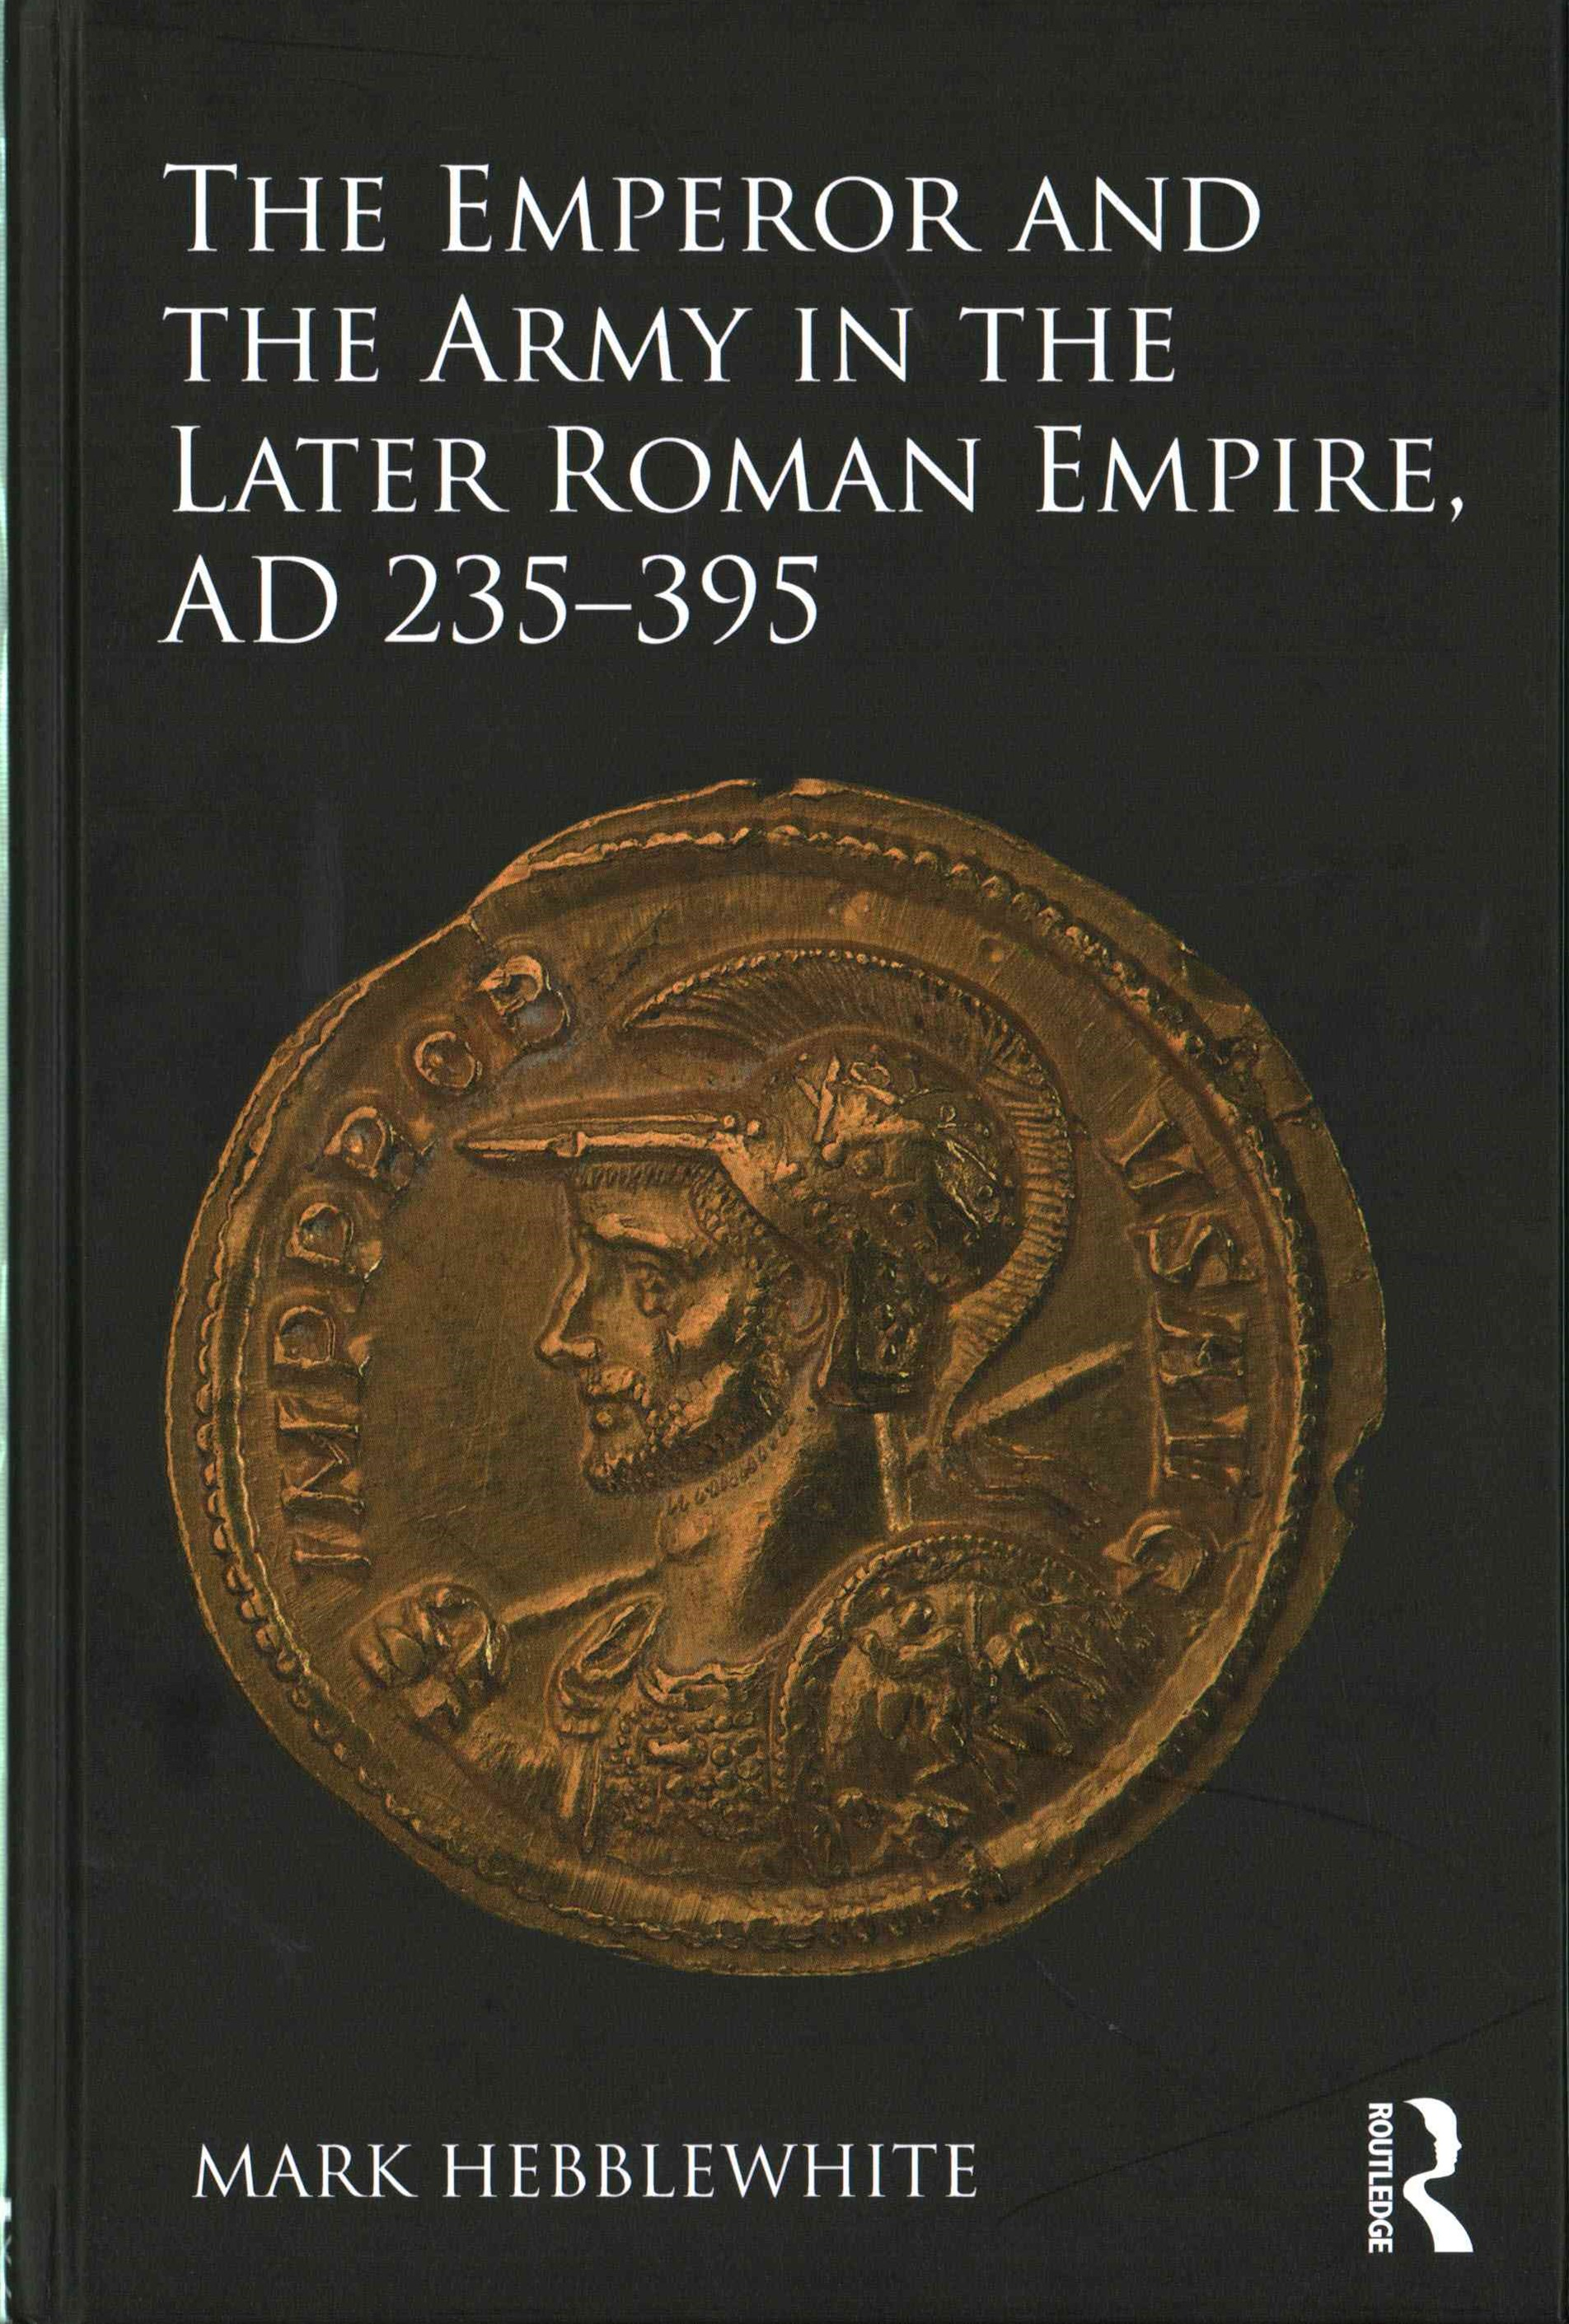 Emperor and the Army in the Later Roman Empire, AD 235 - 395